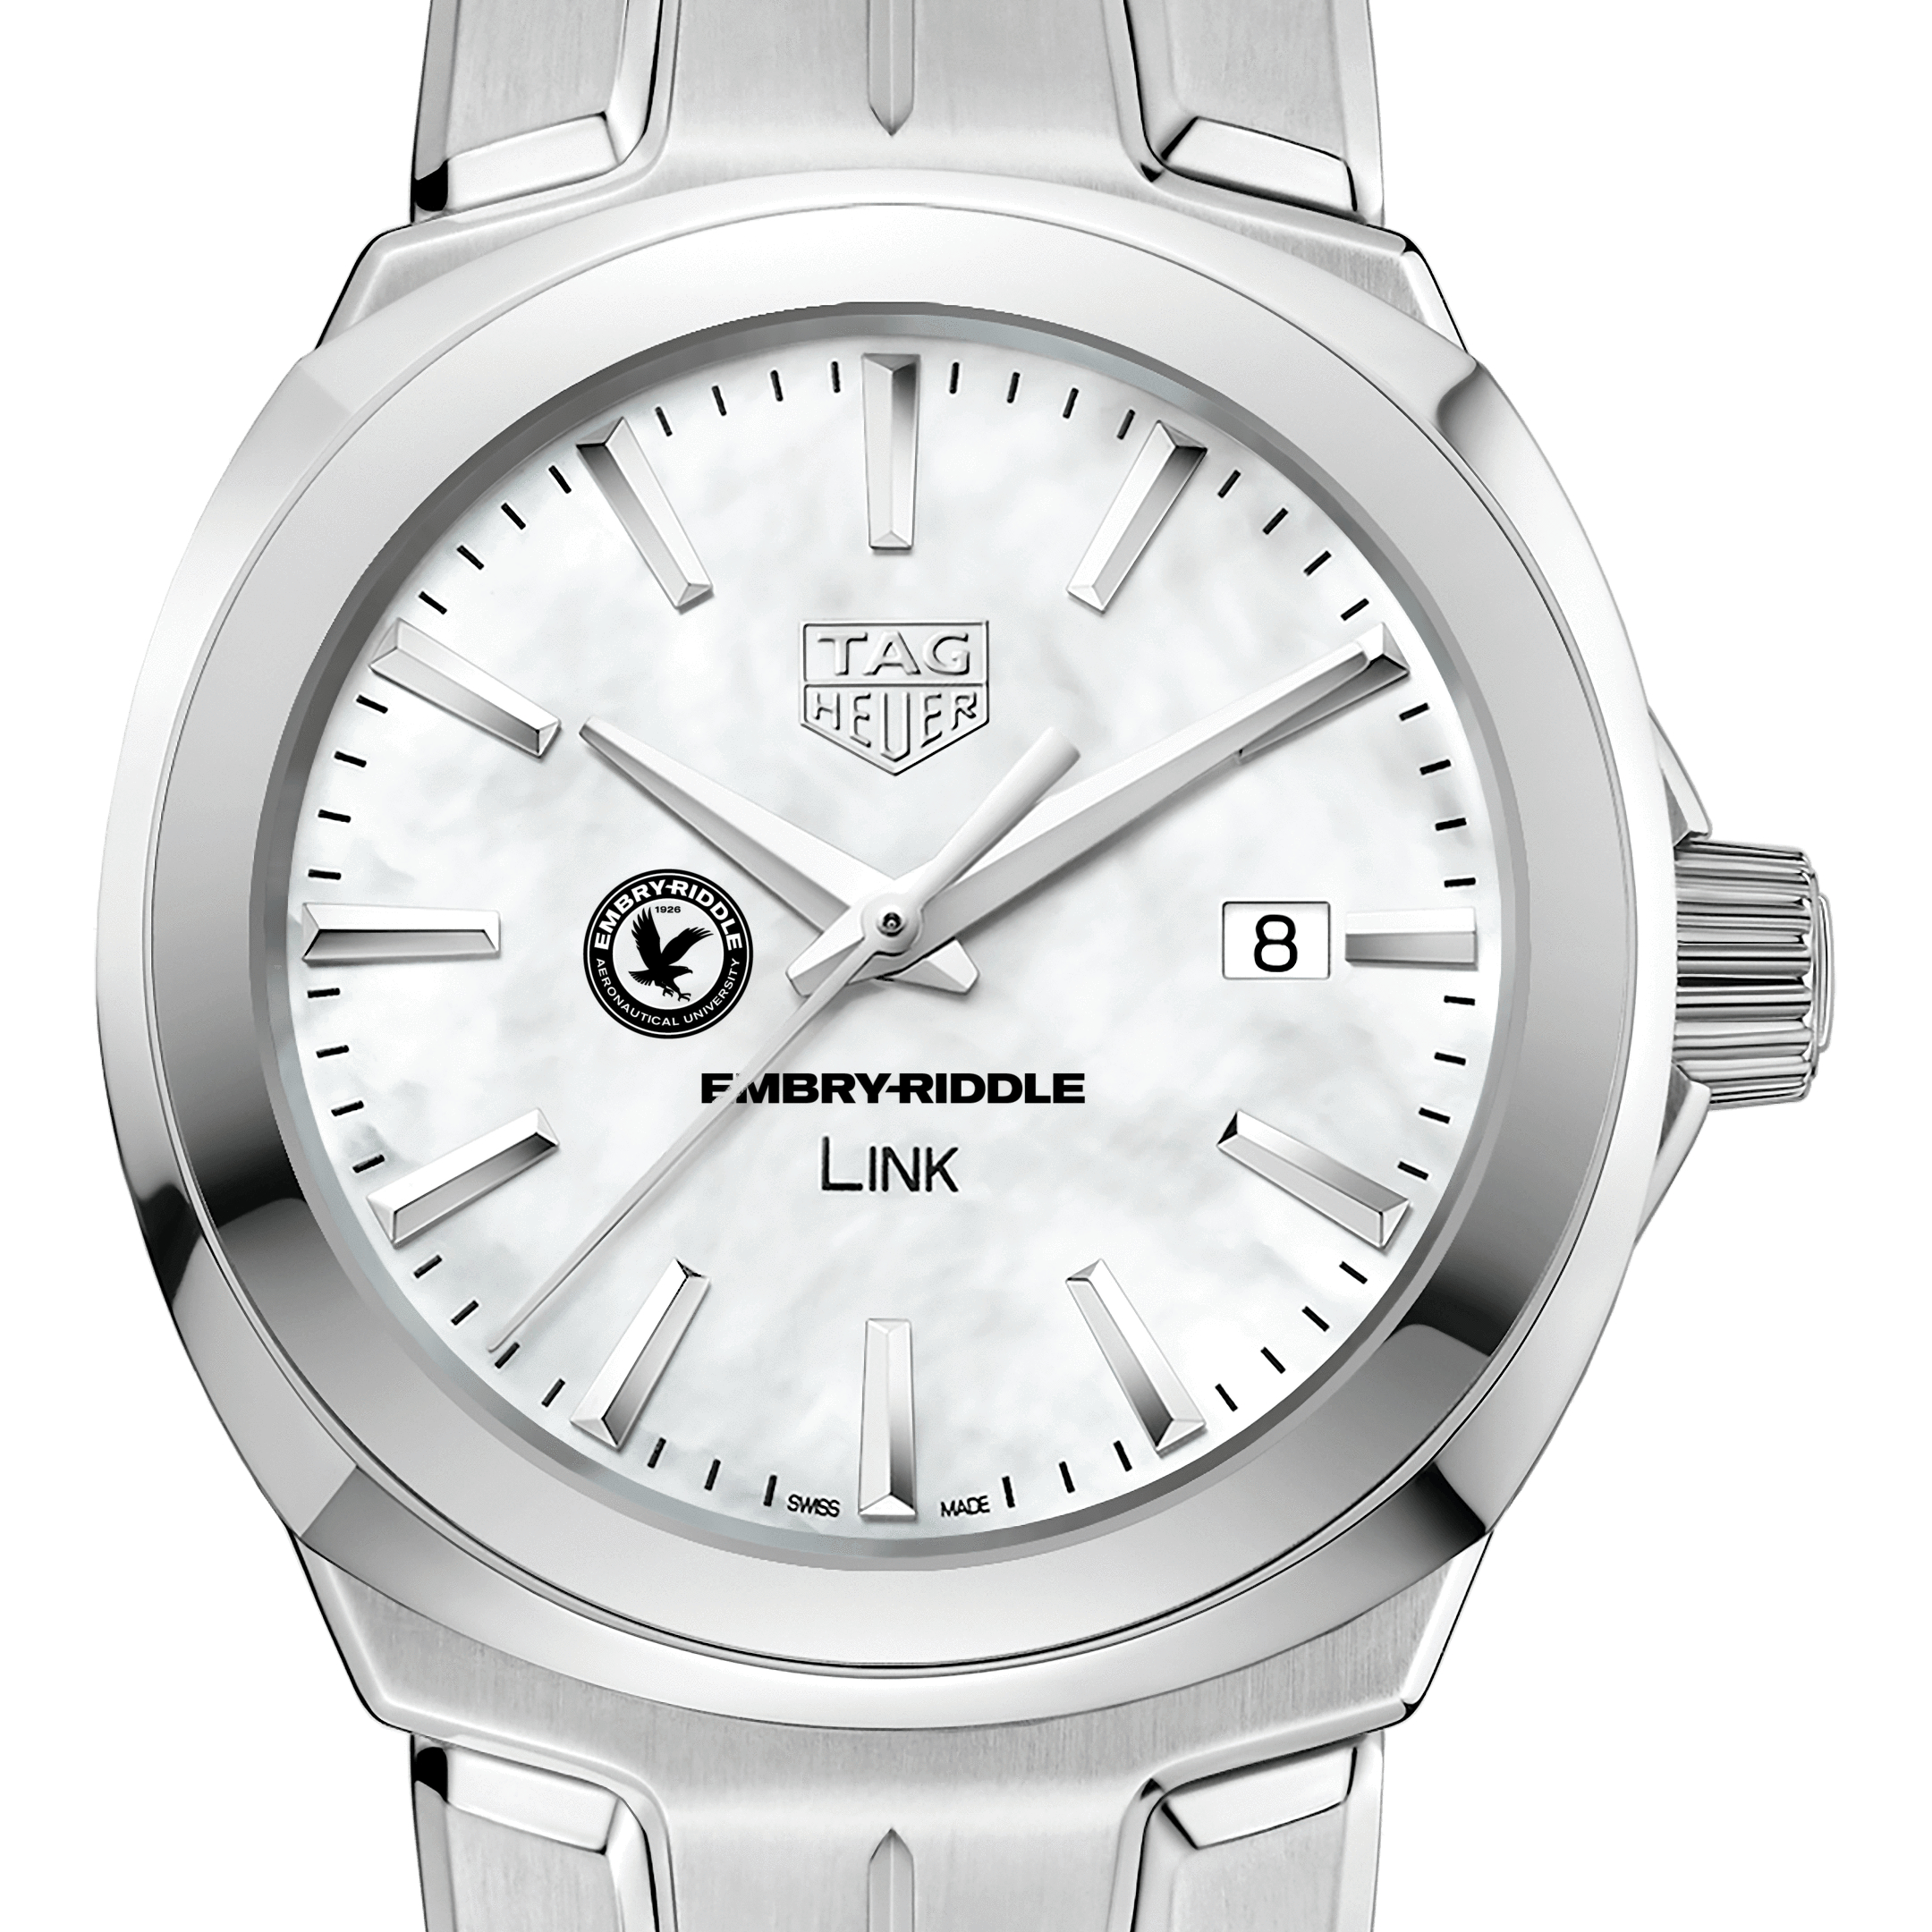 Embry-Riddle TAG Heuer LINK for Women